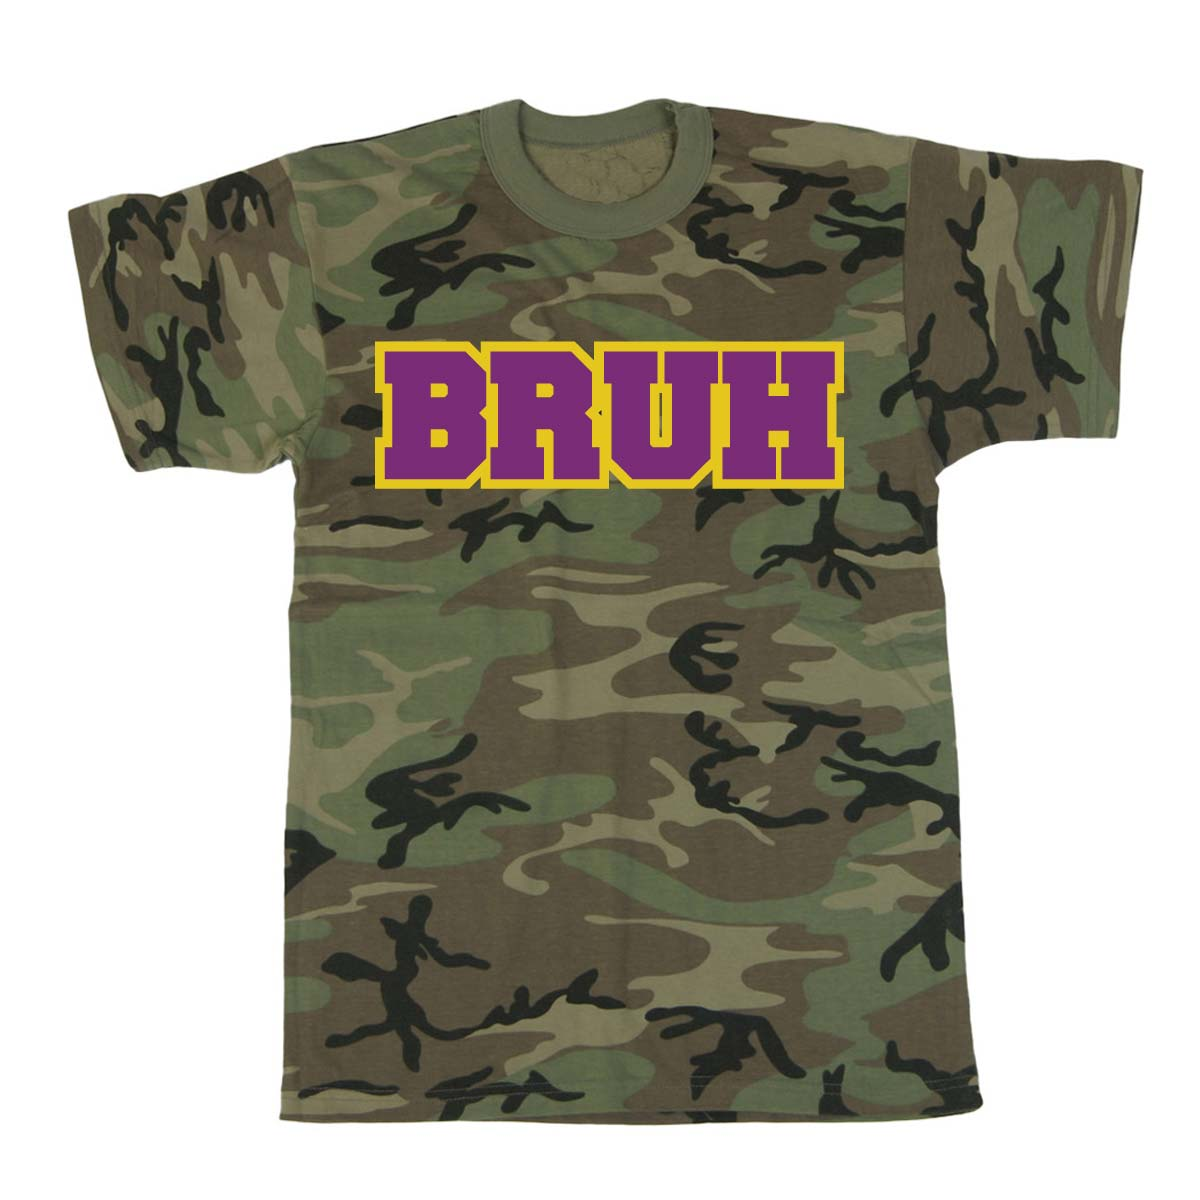 Bruh screen printed t shirt camo for Camouflage t shirt printing